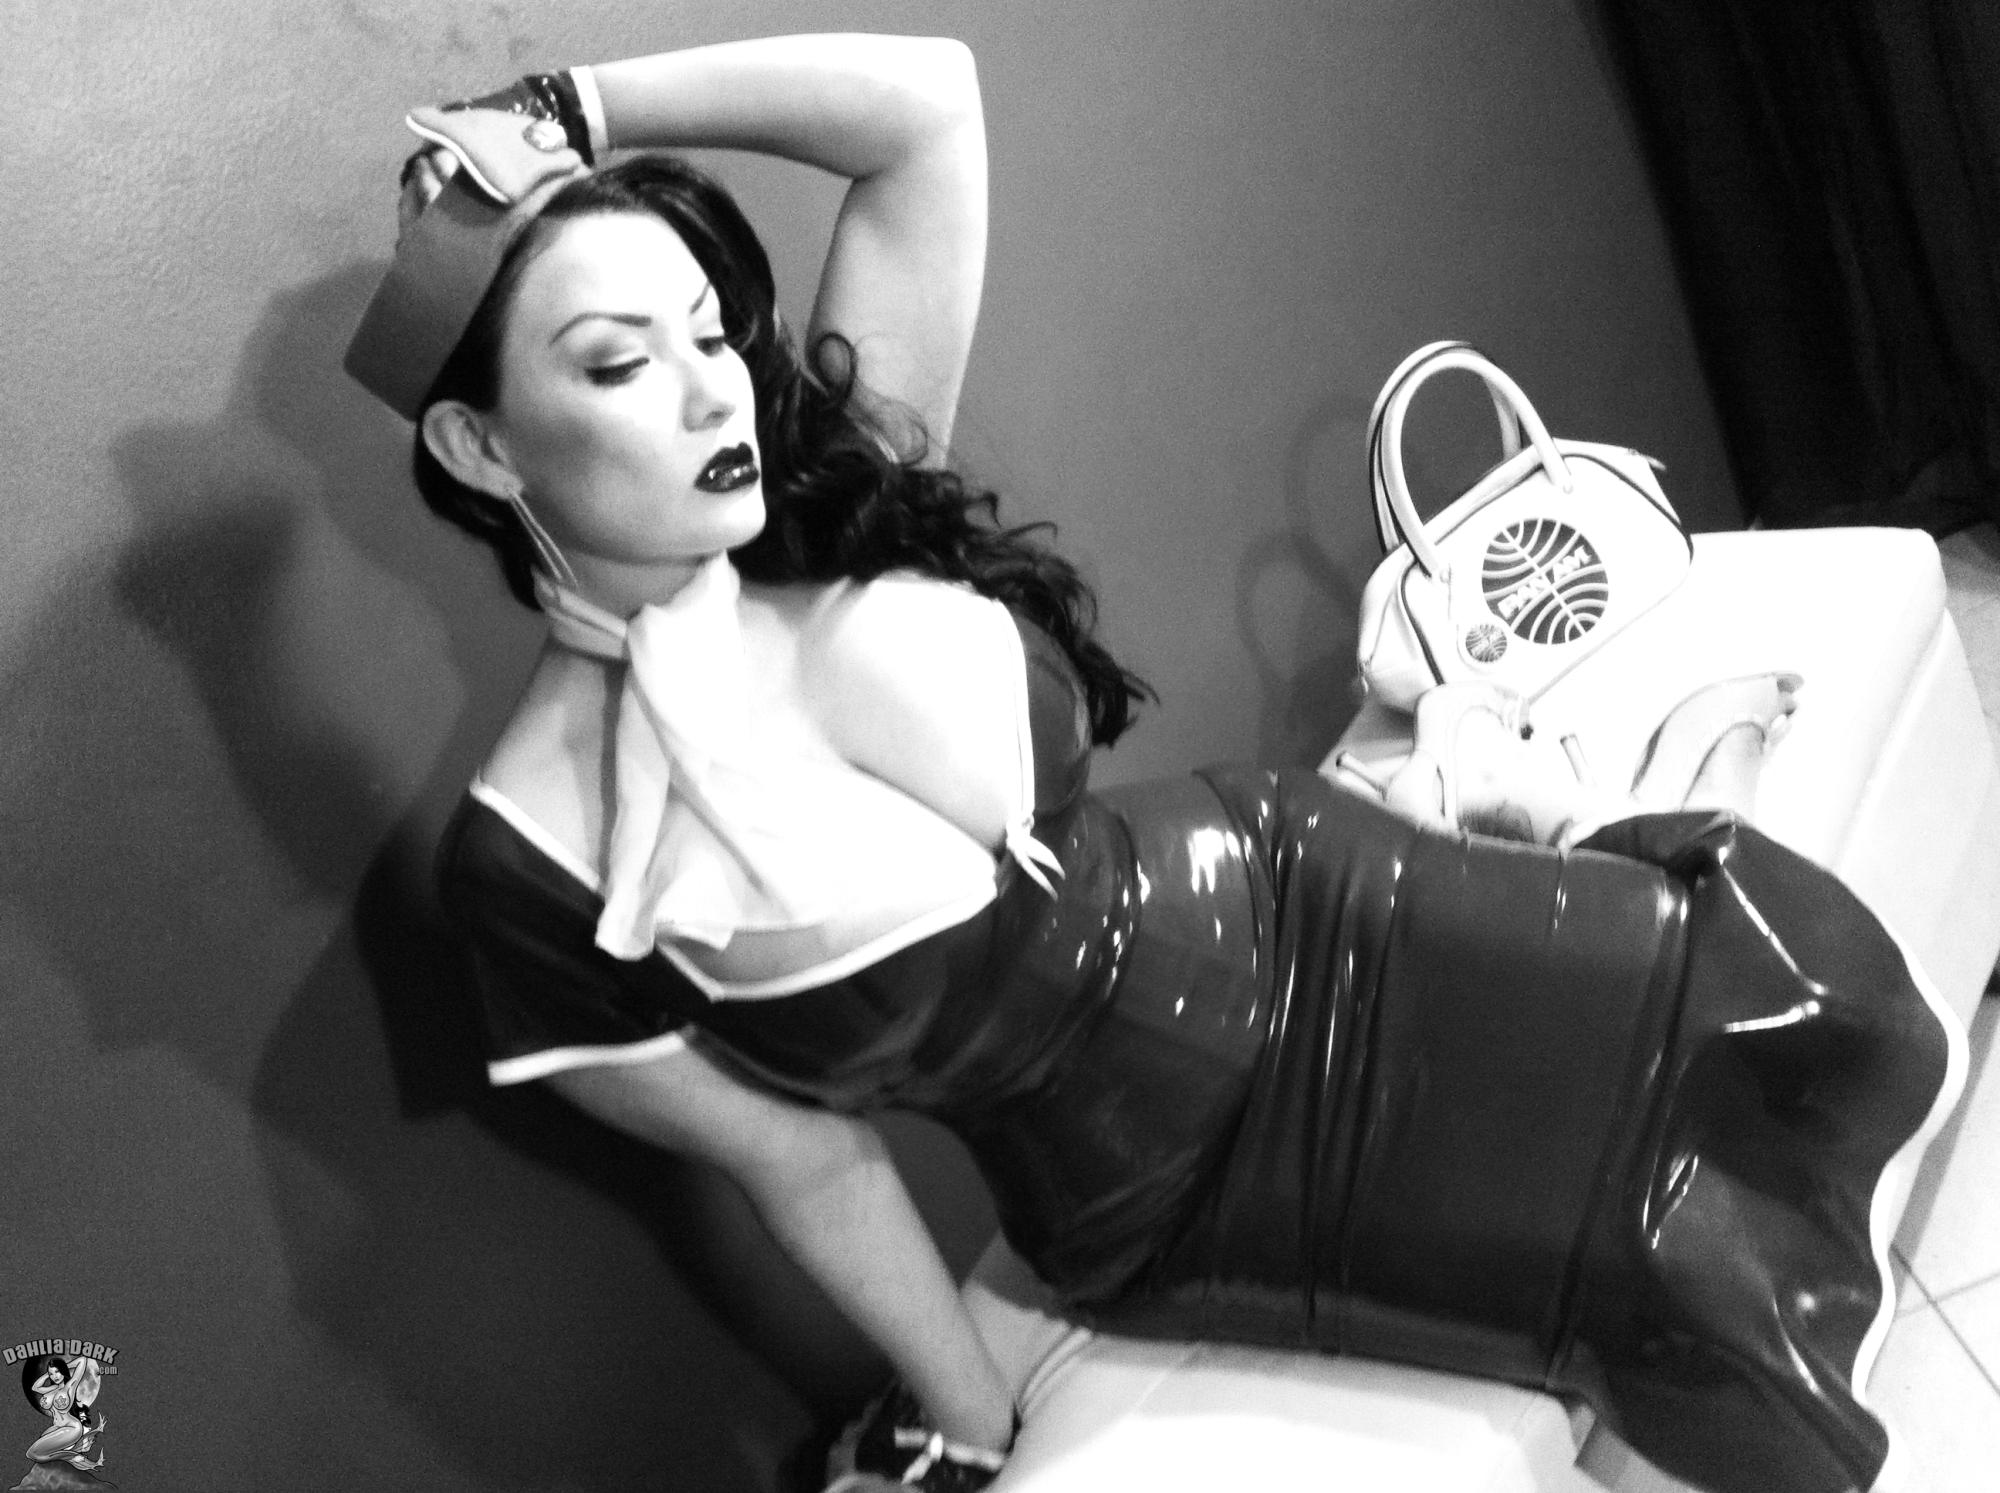 dahlia dark pinup stewardess black and white